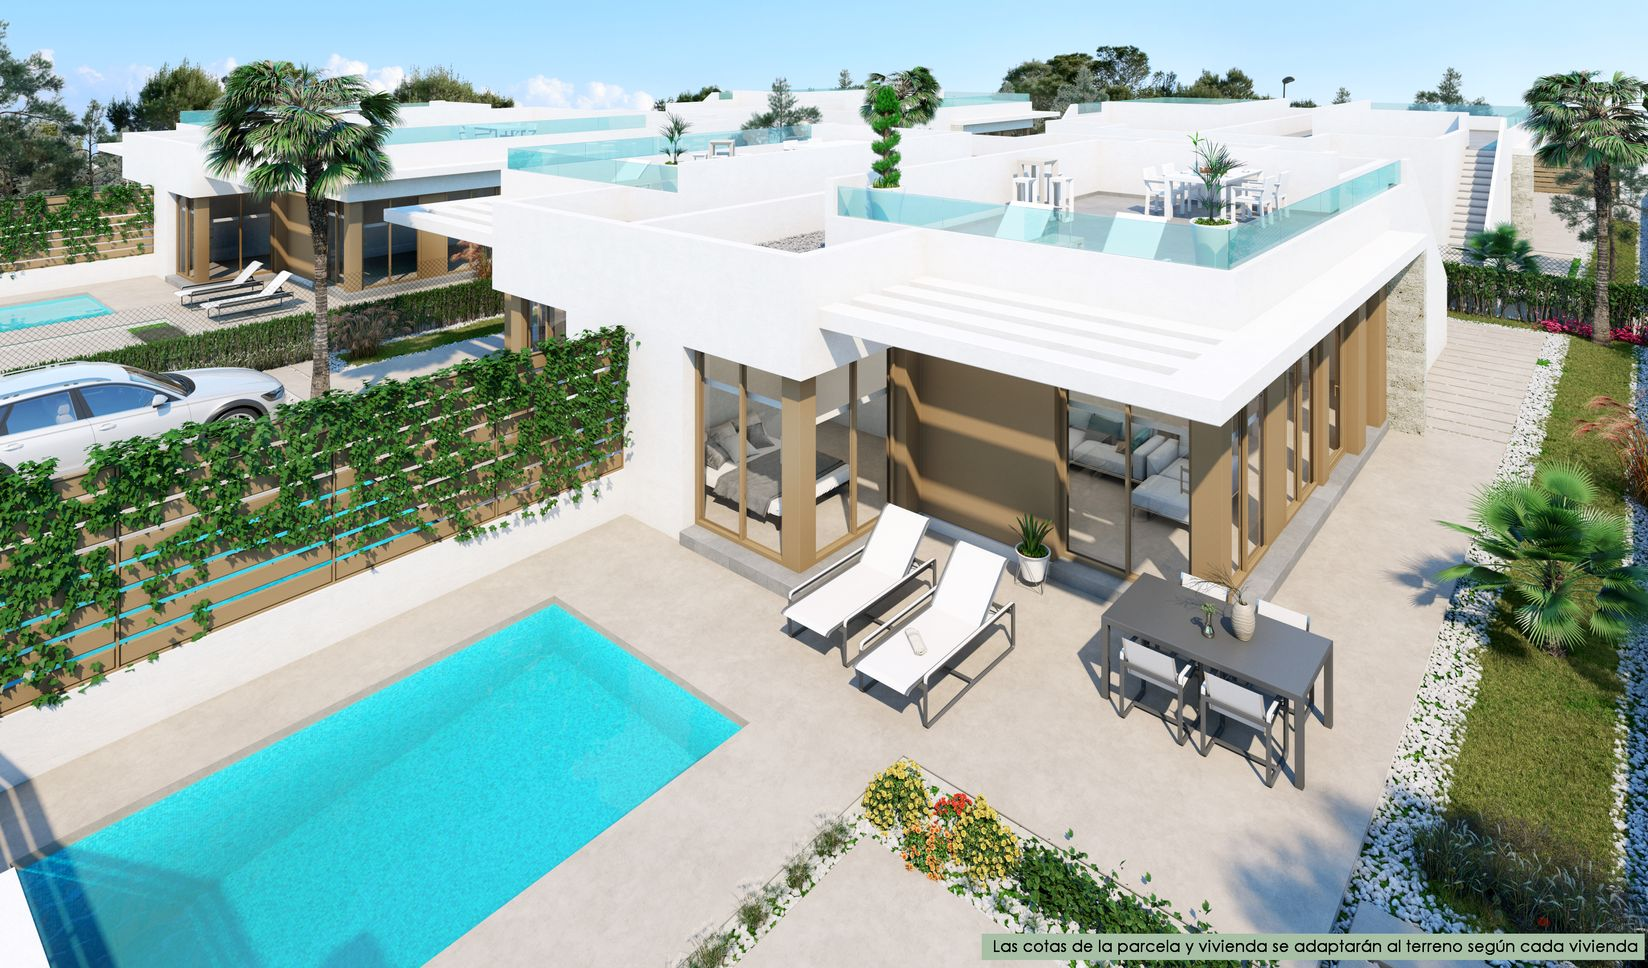 New Build Semi-independence Villa with 3 Bedrooms in Vistabella Golf